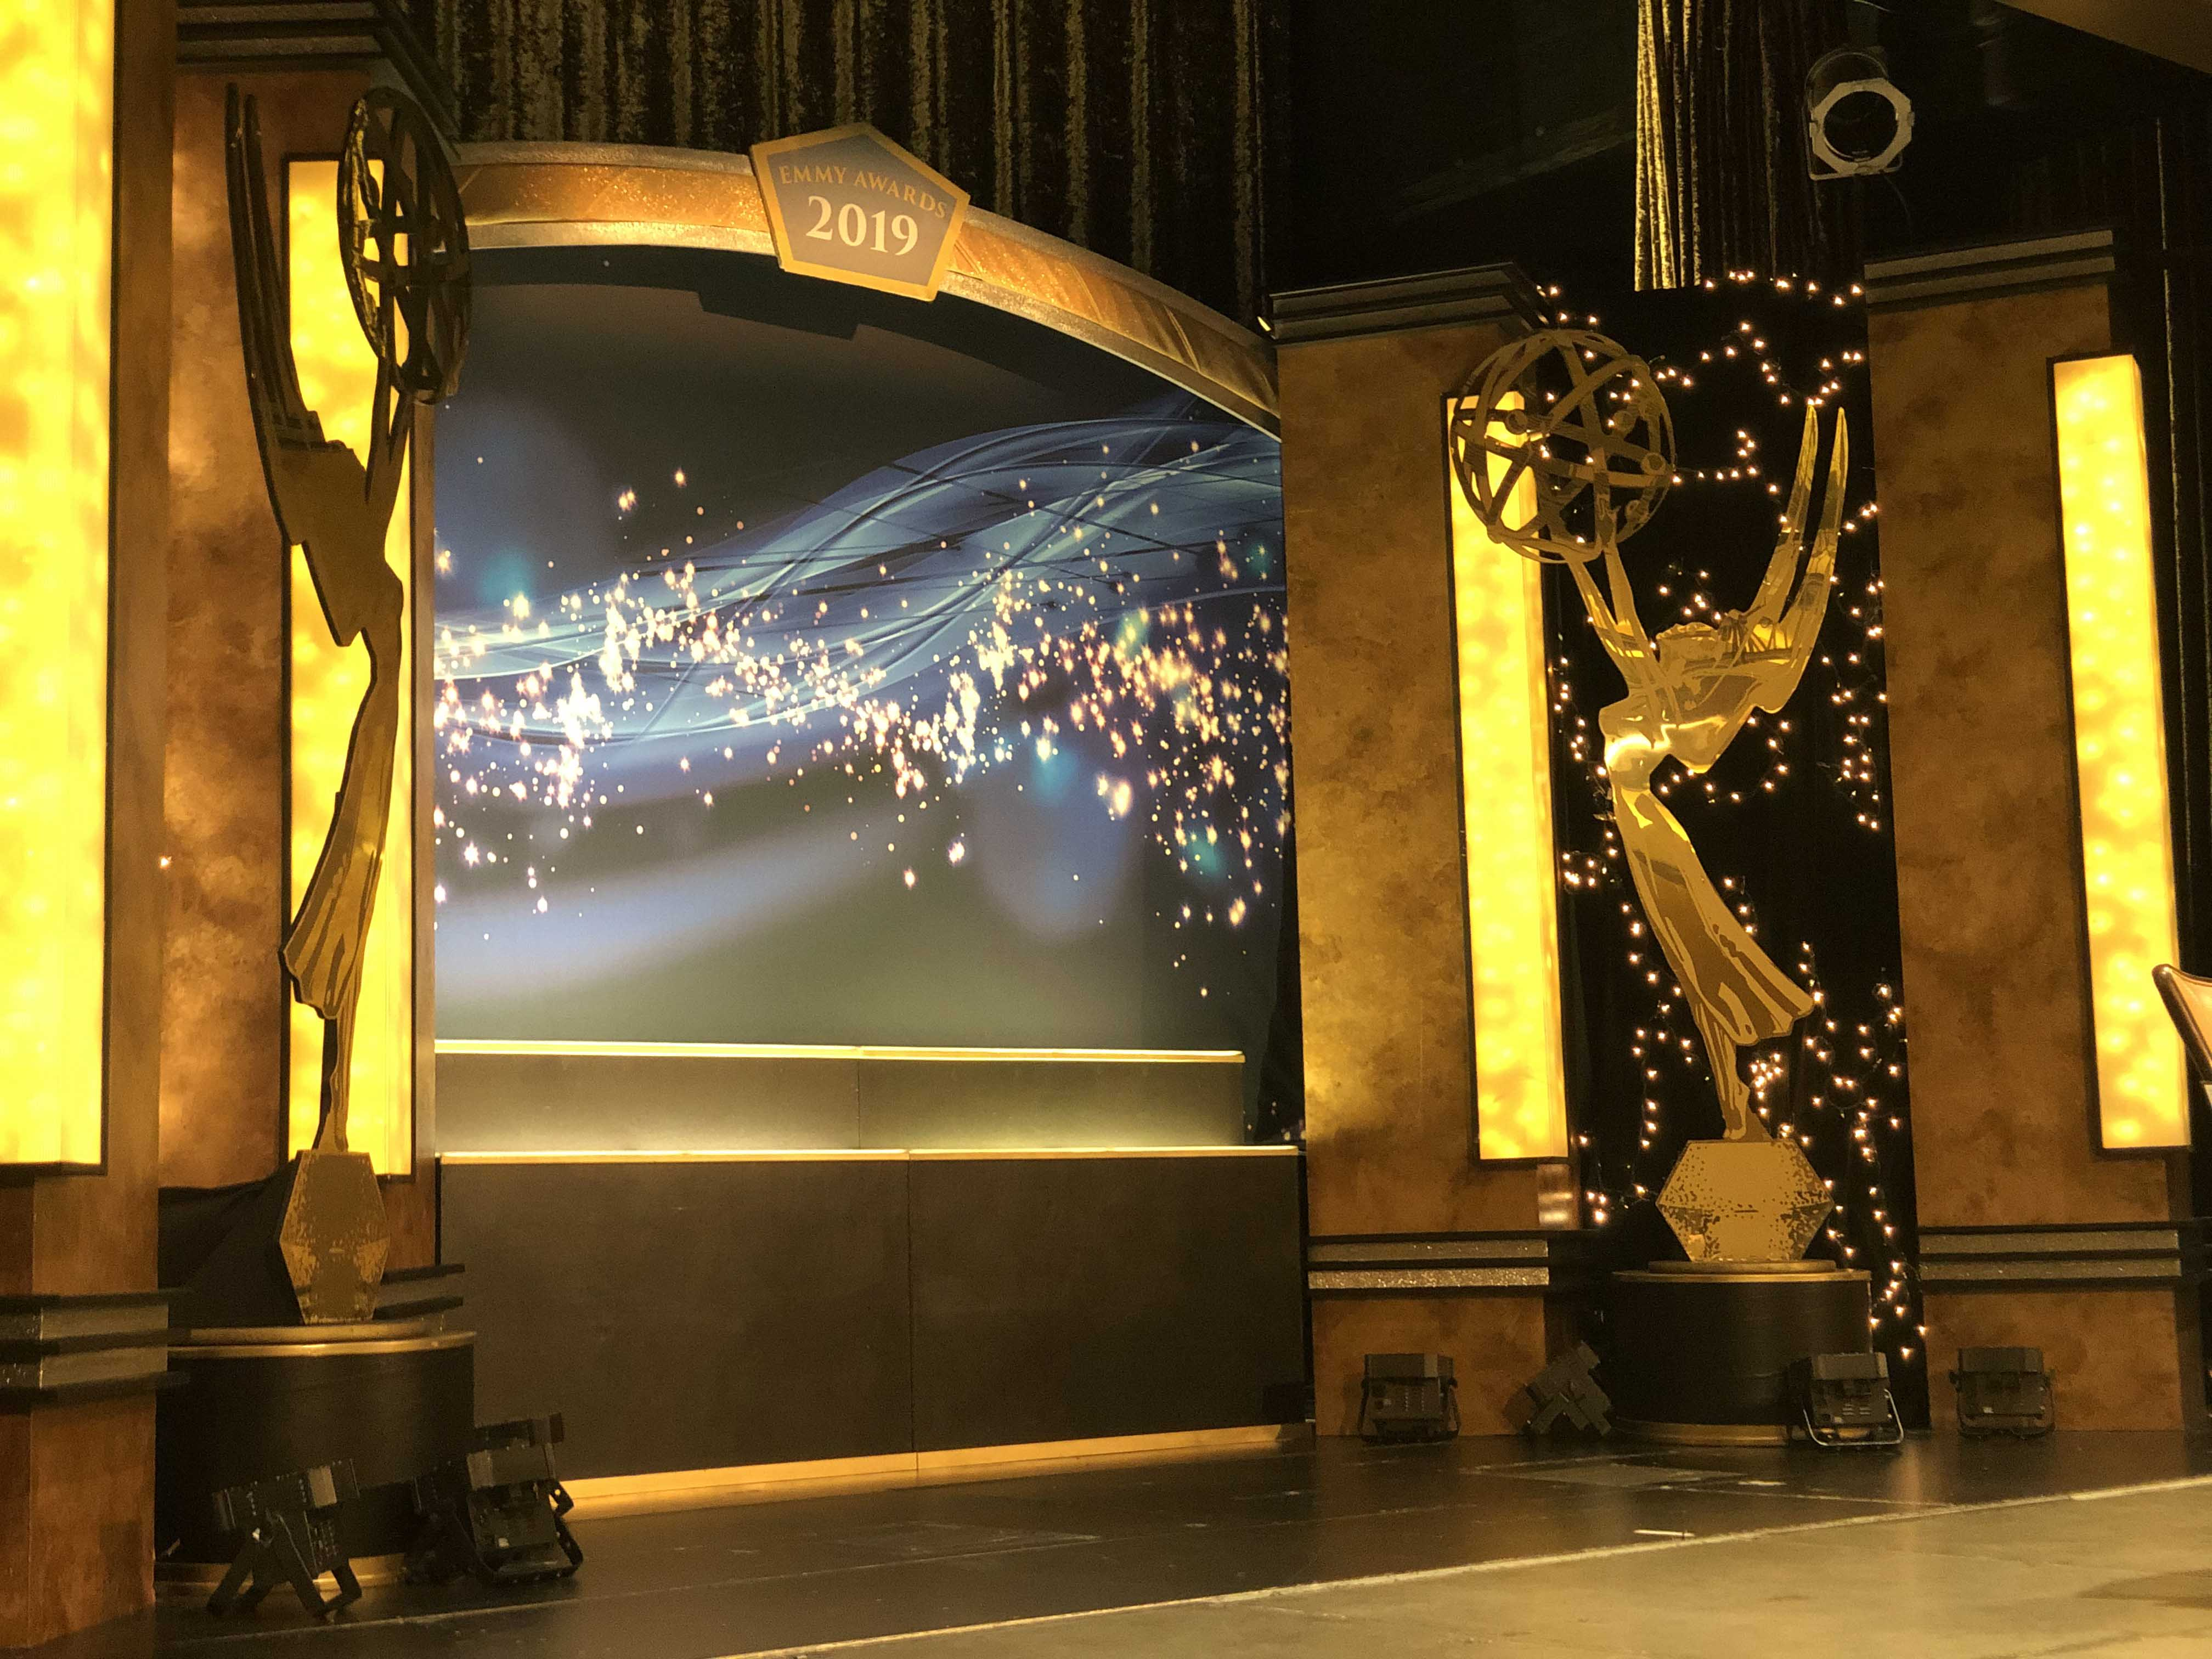 Stage setup at the 2019 Emmy Awards